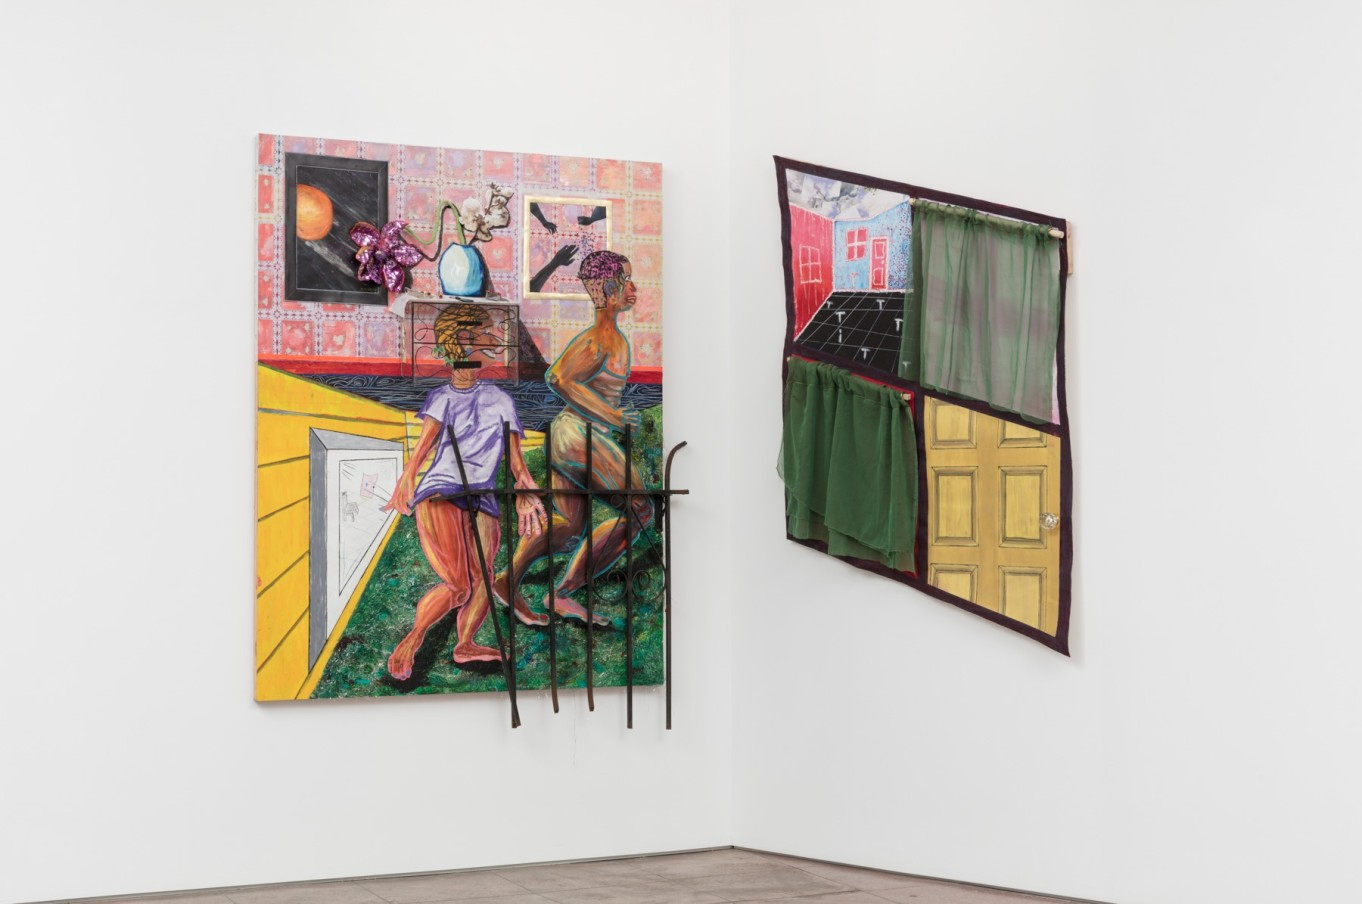 Devin N. Morris 12:44 pm; And Then A Breeze Swept Across the Floor, Stirring Out The Window In Disbelief, 2019 Left panel: Acrylic, oil pastel, tensile, watercolor, iron gate, collage, plexiglass, leather, glass tray, plastic beads, plastic keychain, metal ring, vinyl, & canvas on wood panel Right panel: Acrylic, oil pastel, house paint, collage, metal hook, wood dowel, silk, glass doorknob on canvas Left panel: 162.6 x 127 x 3.8 cm 64 x 50 x 1 1/2 in Right panel: 118.1 x 109.2 cm 46 1/2 x 43 in